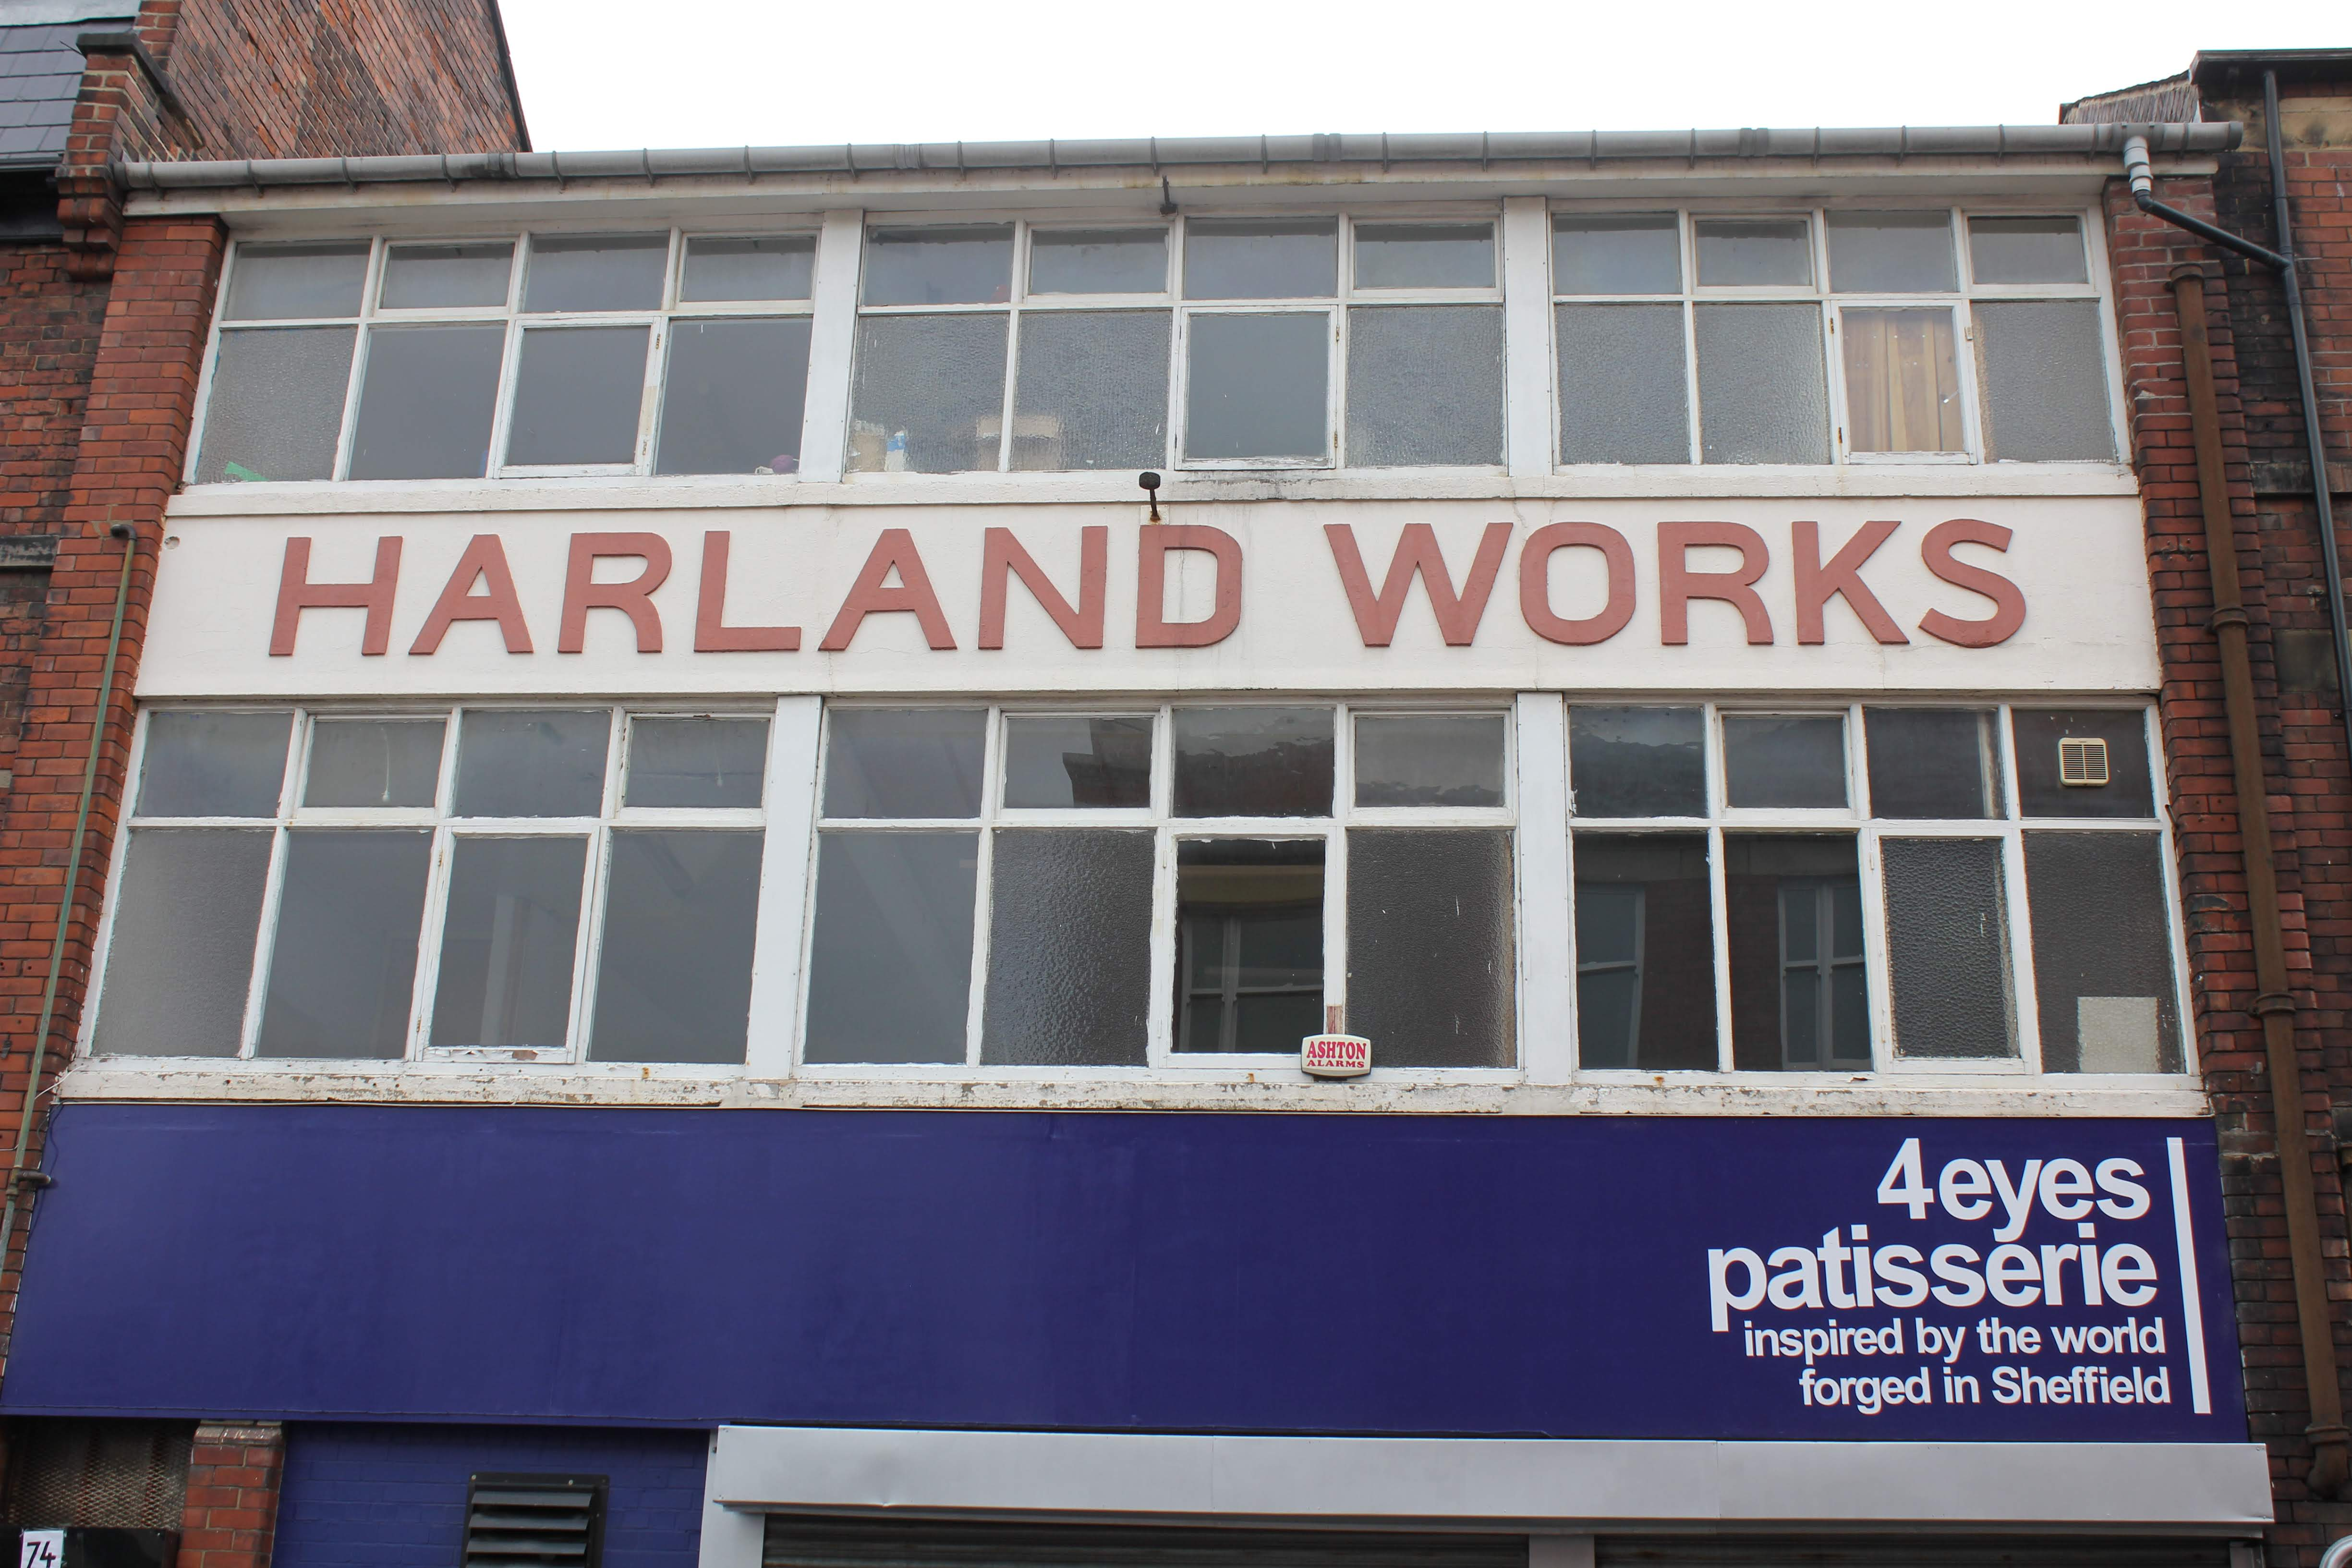 harland works